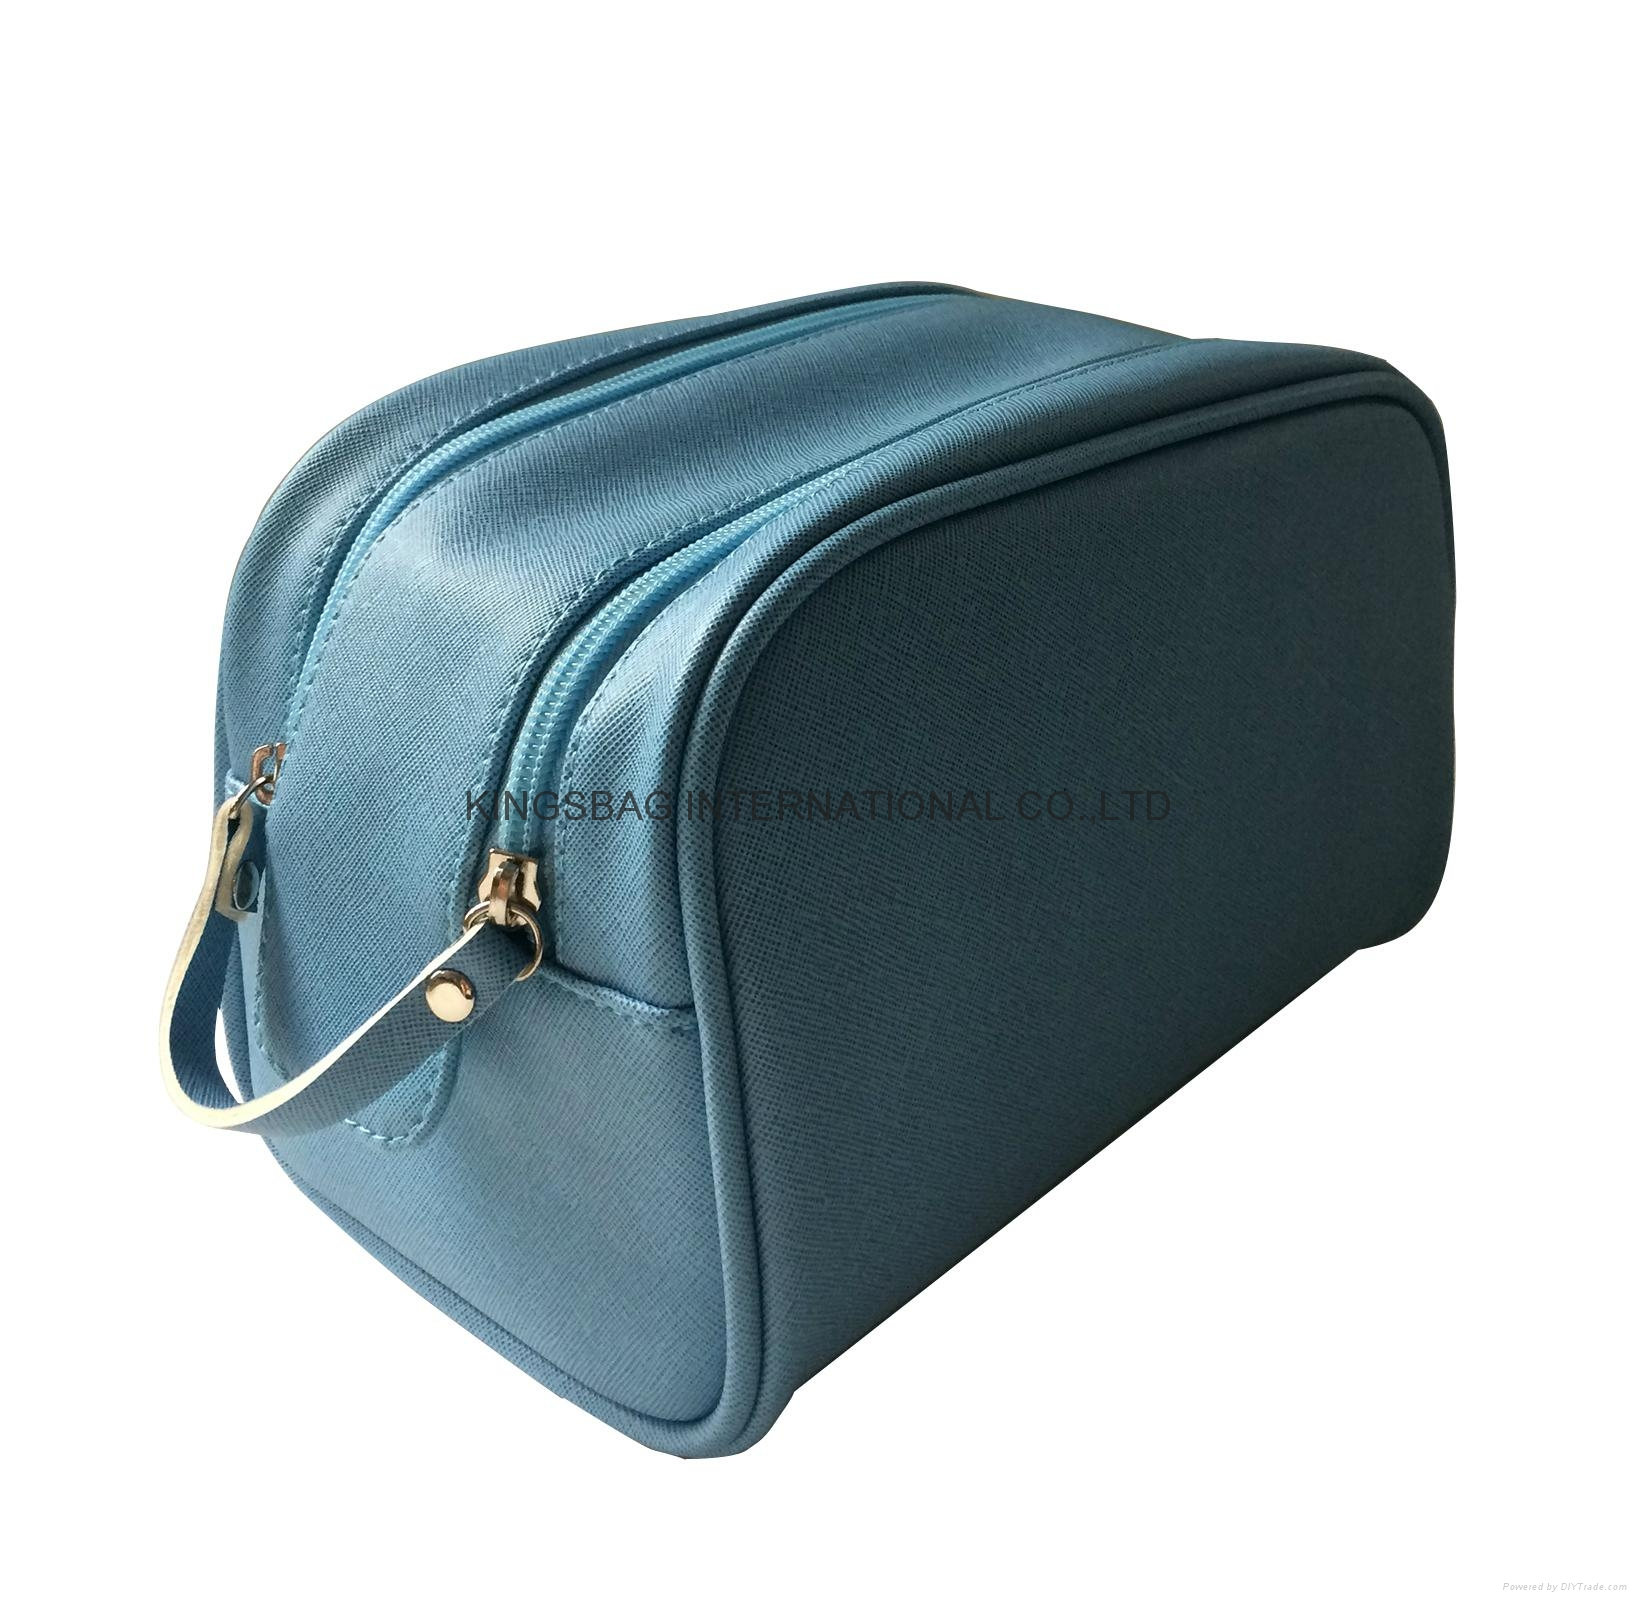 Imitation PU leather saffiano pattern fashion toiletry bag,PU cosmetic bag 1